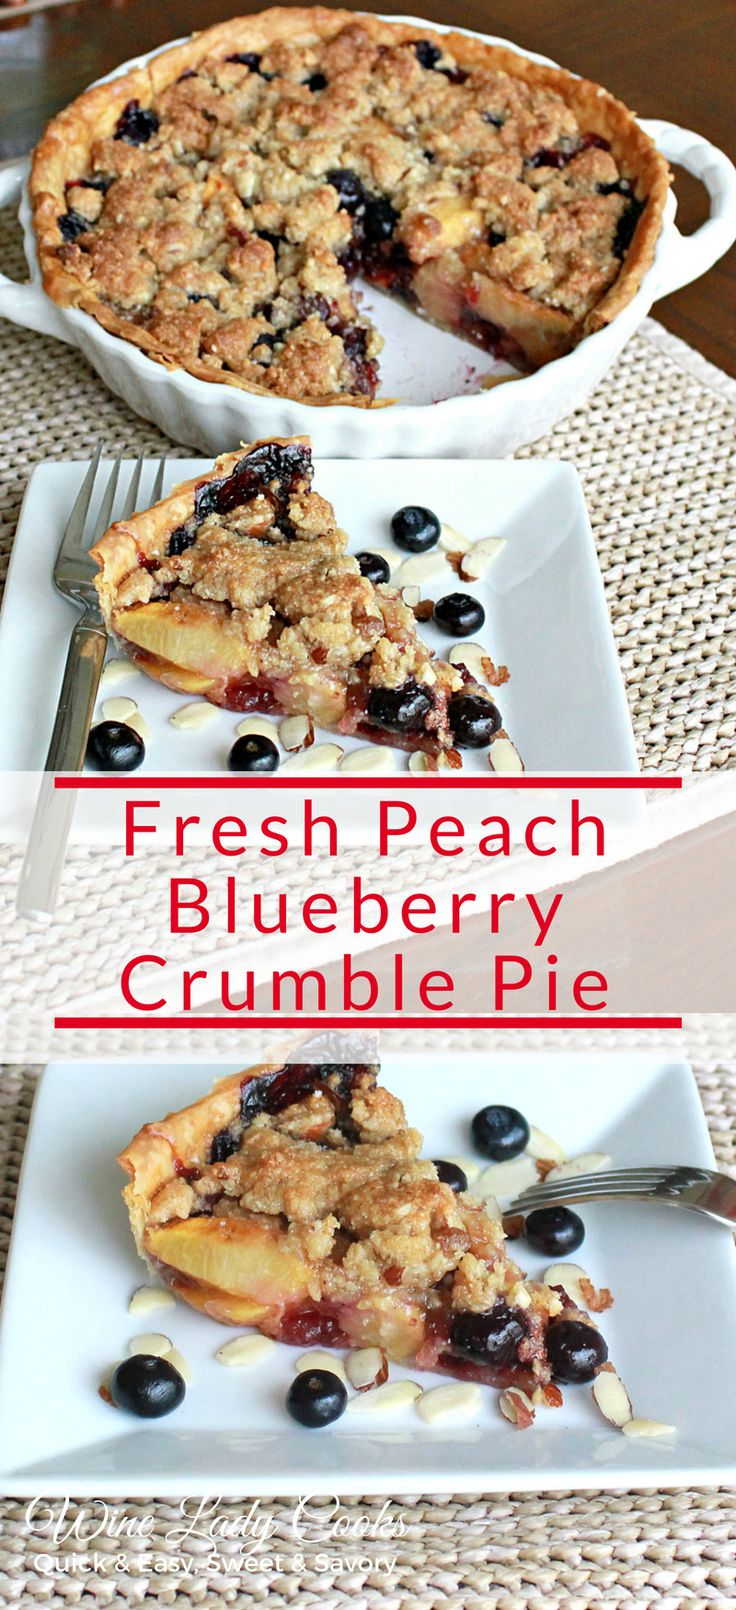 Air Fryer Fresh Peach Blueberry Crumble Pie recipe is easy to make any time. Or for any special occasion or holiday. Quick & Easy to make click through for the easy recipe. #airfryer #fruitpie #easyrecipe #dessert